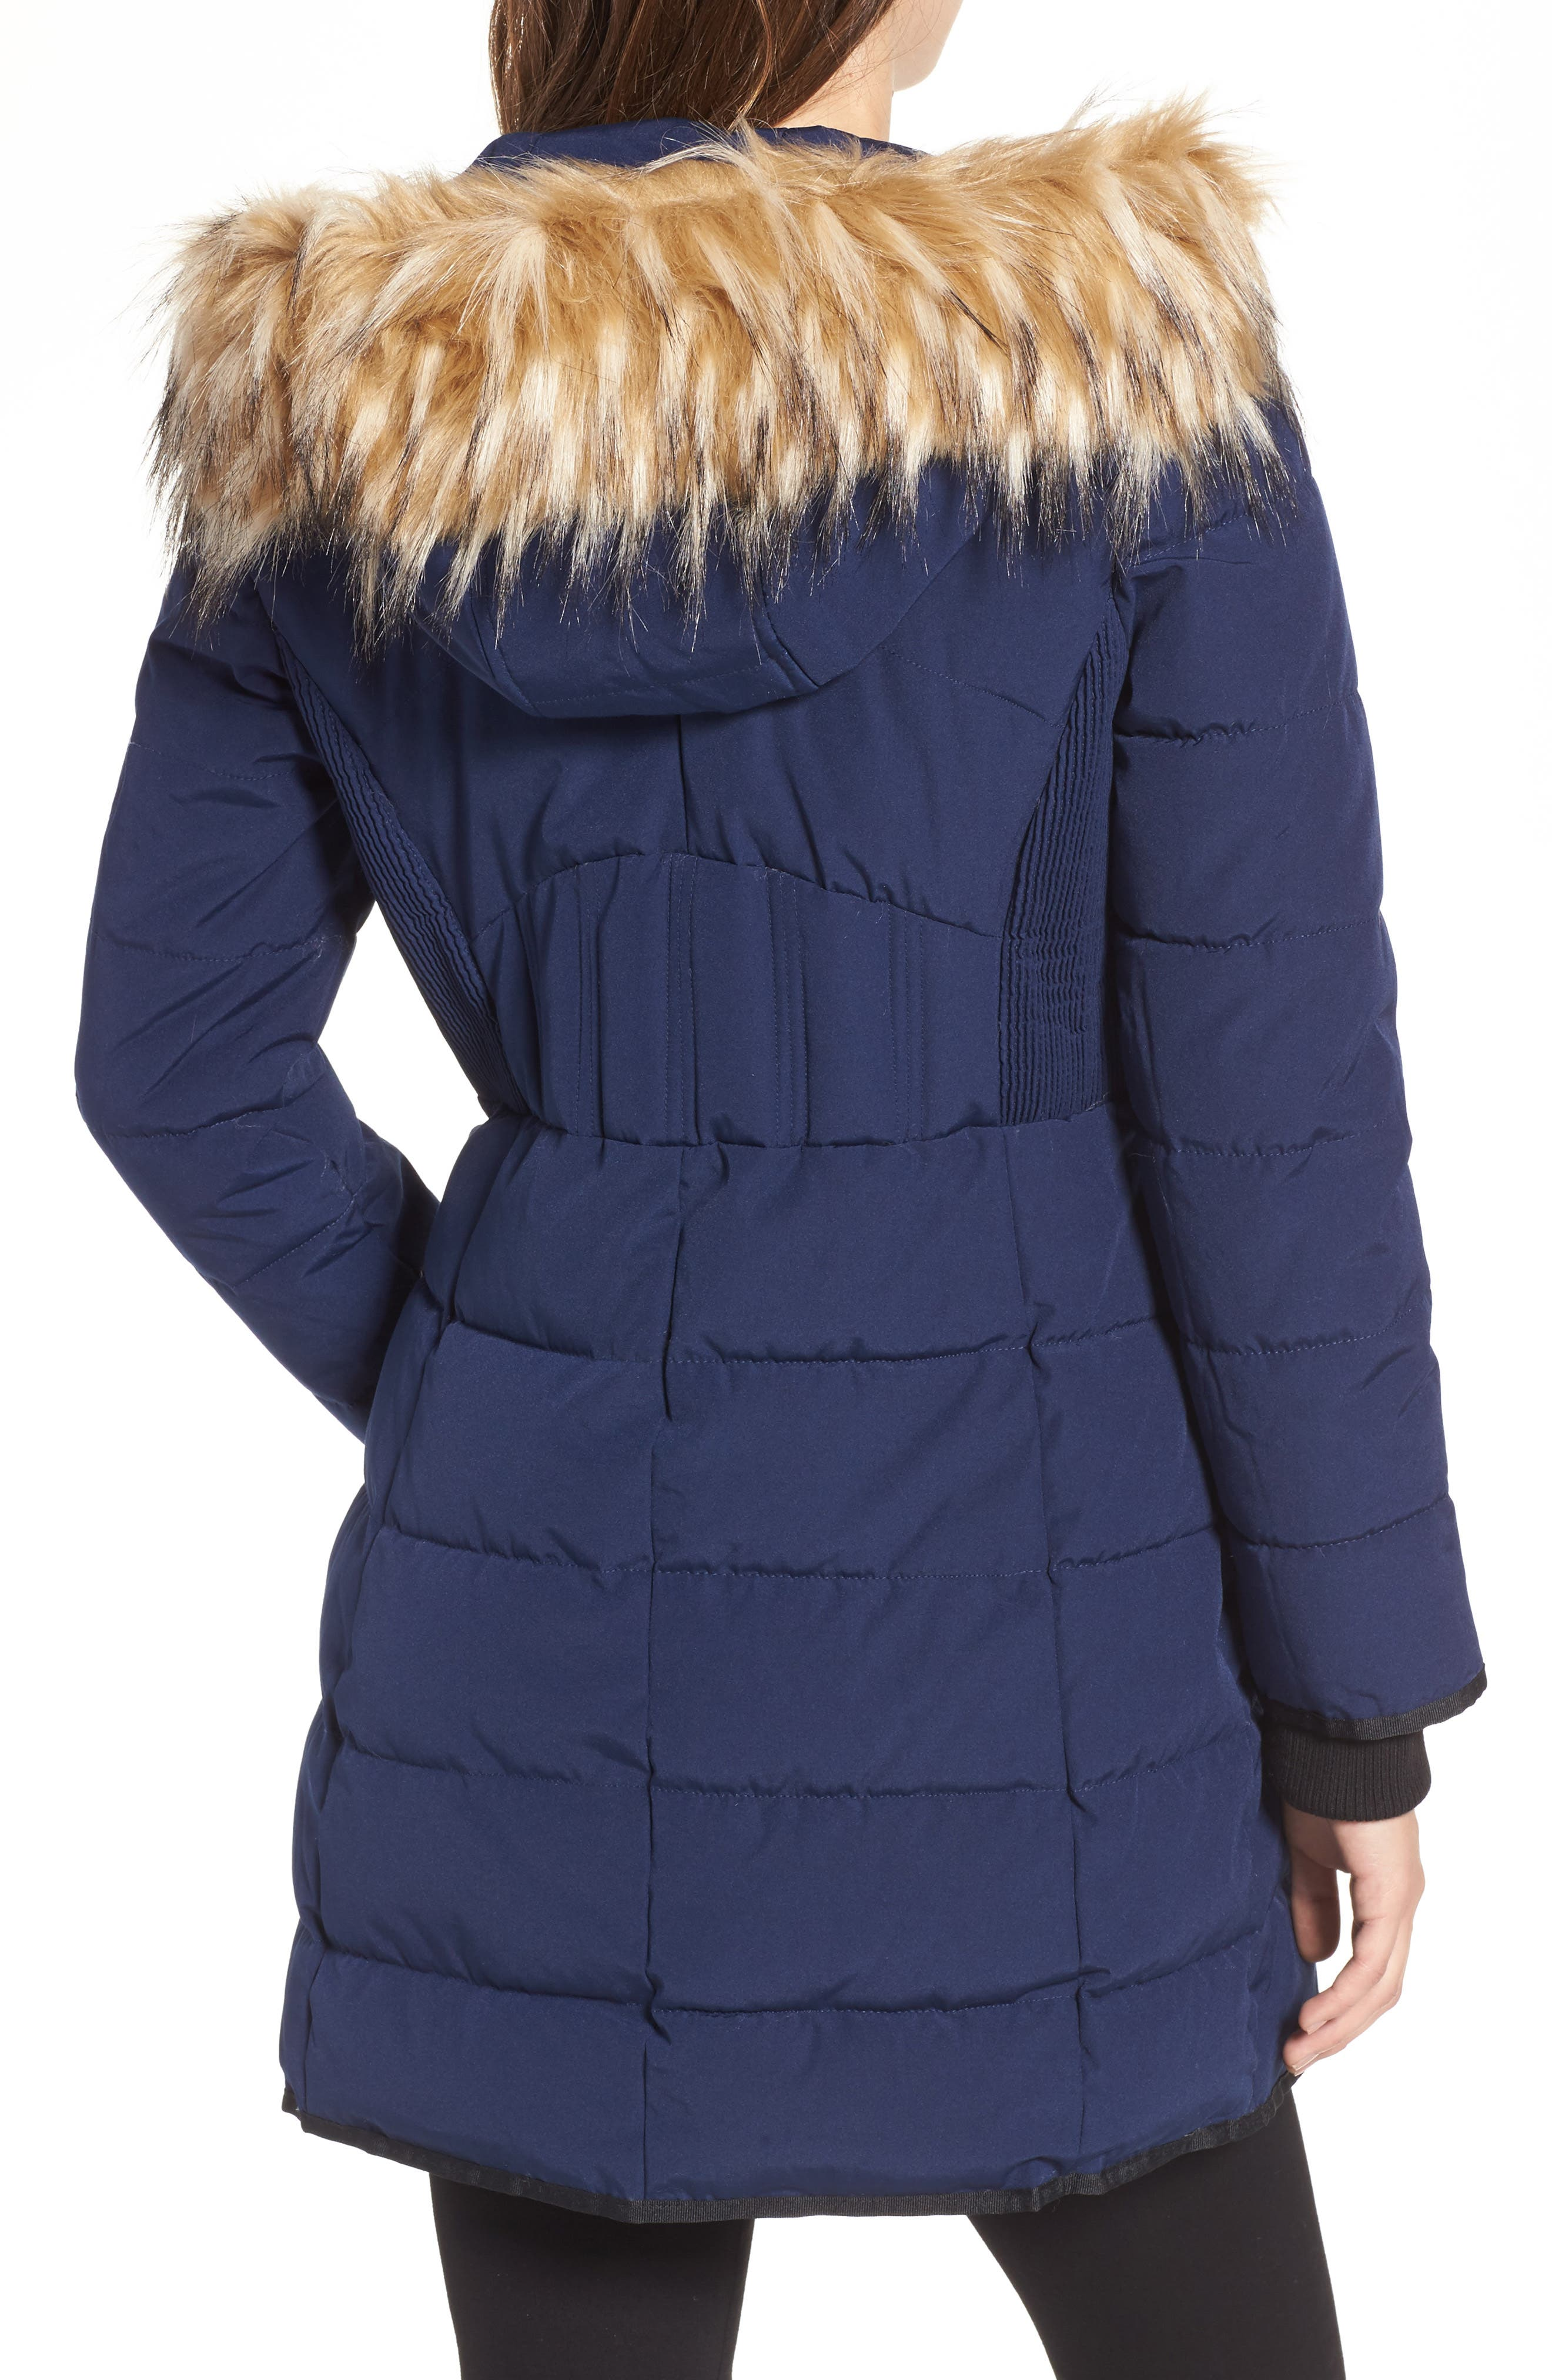 Hooded Jacket with Faux Fur Trim,                             Alternate thumbnail 2, color,                             Navy